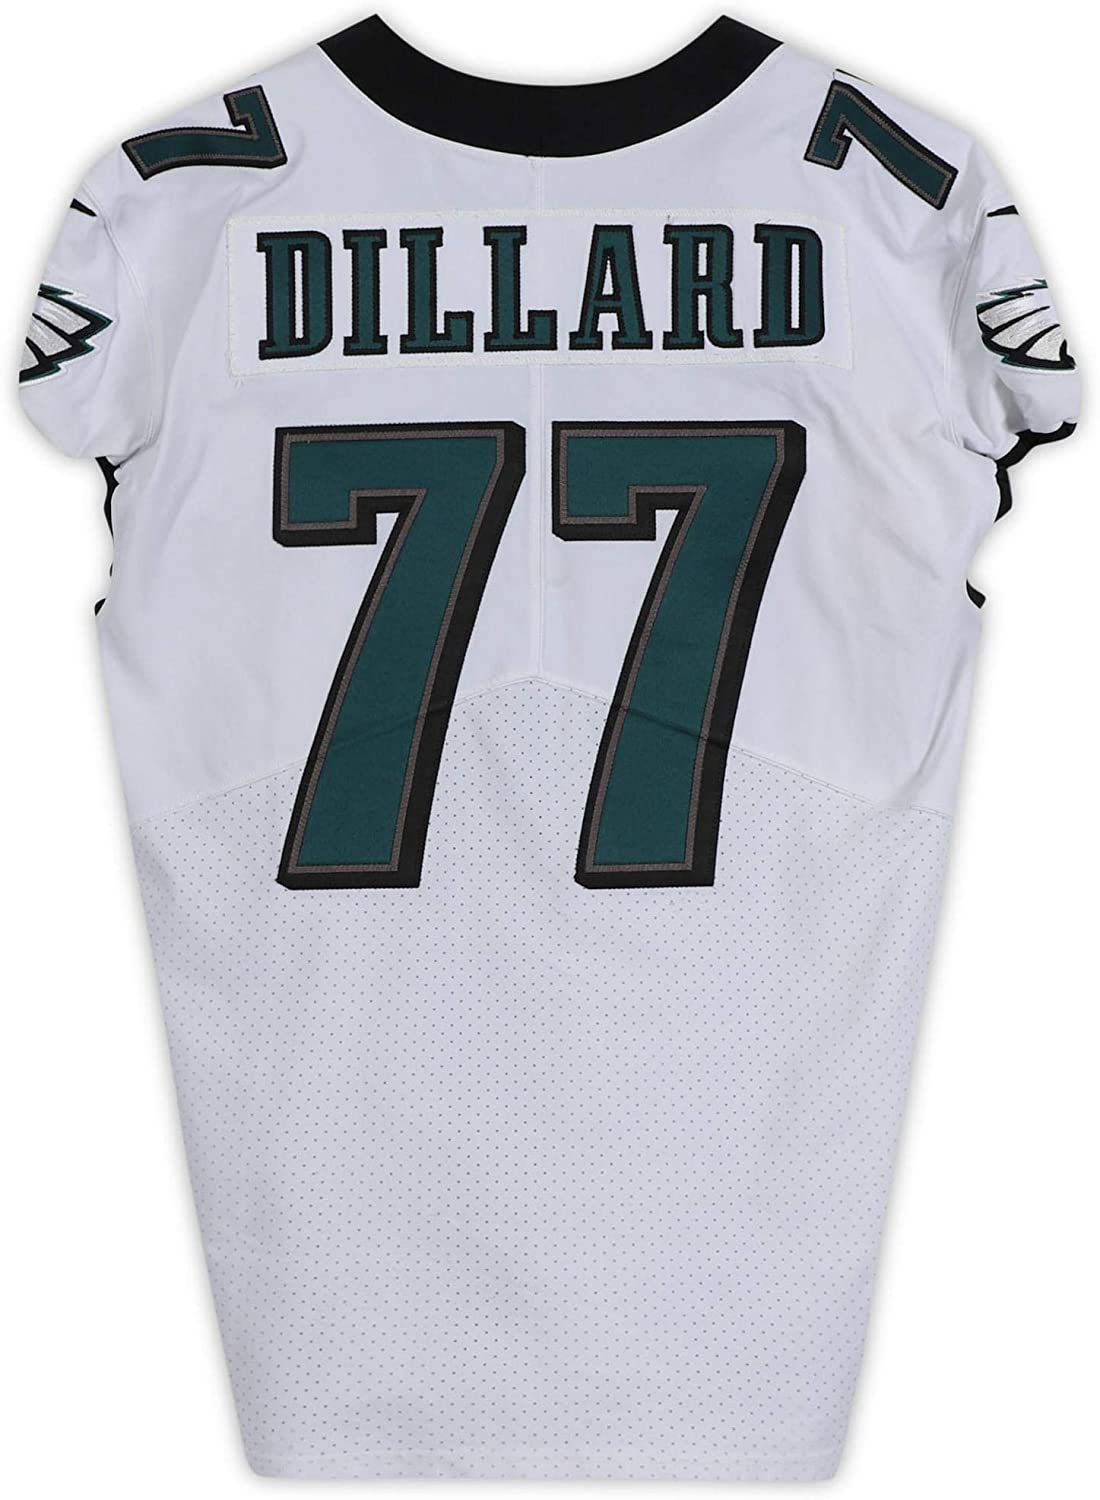 Andre Dillard Philadelphia Eagles Game-Used #77 White Jersey from the 2019-20 NFL Season - Size 48+4 - Fanatics Authentic Certified